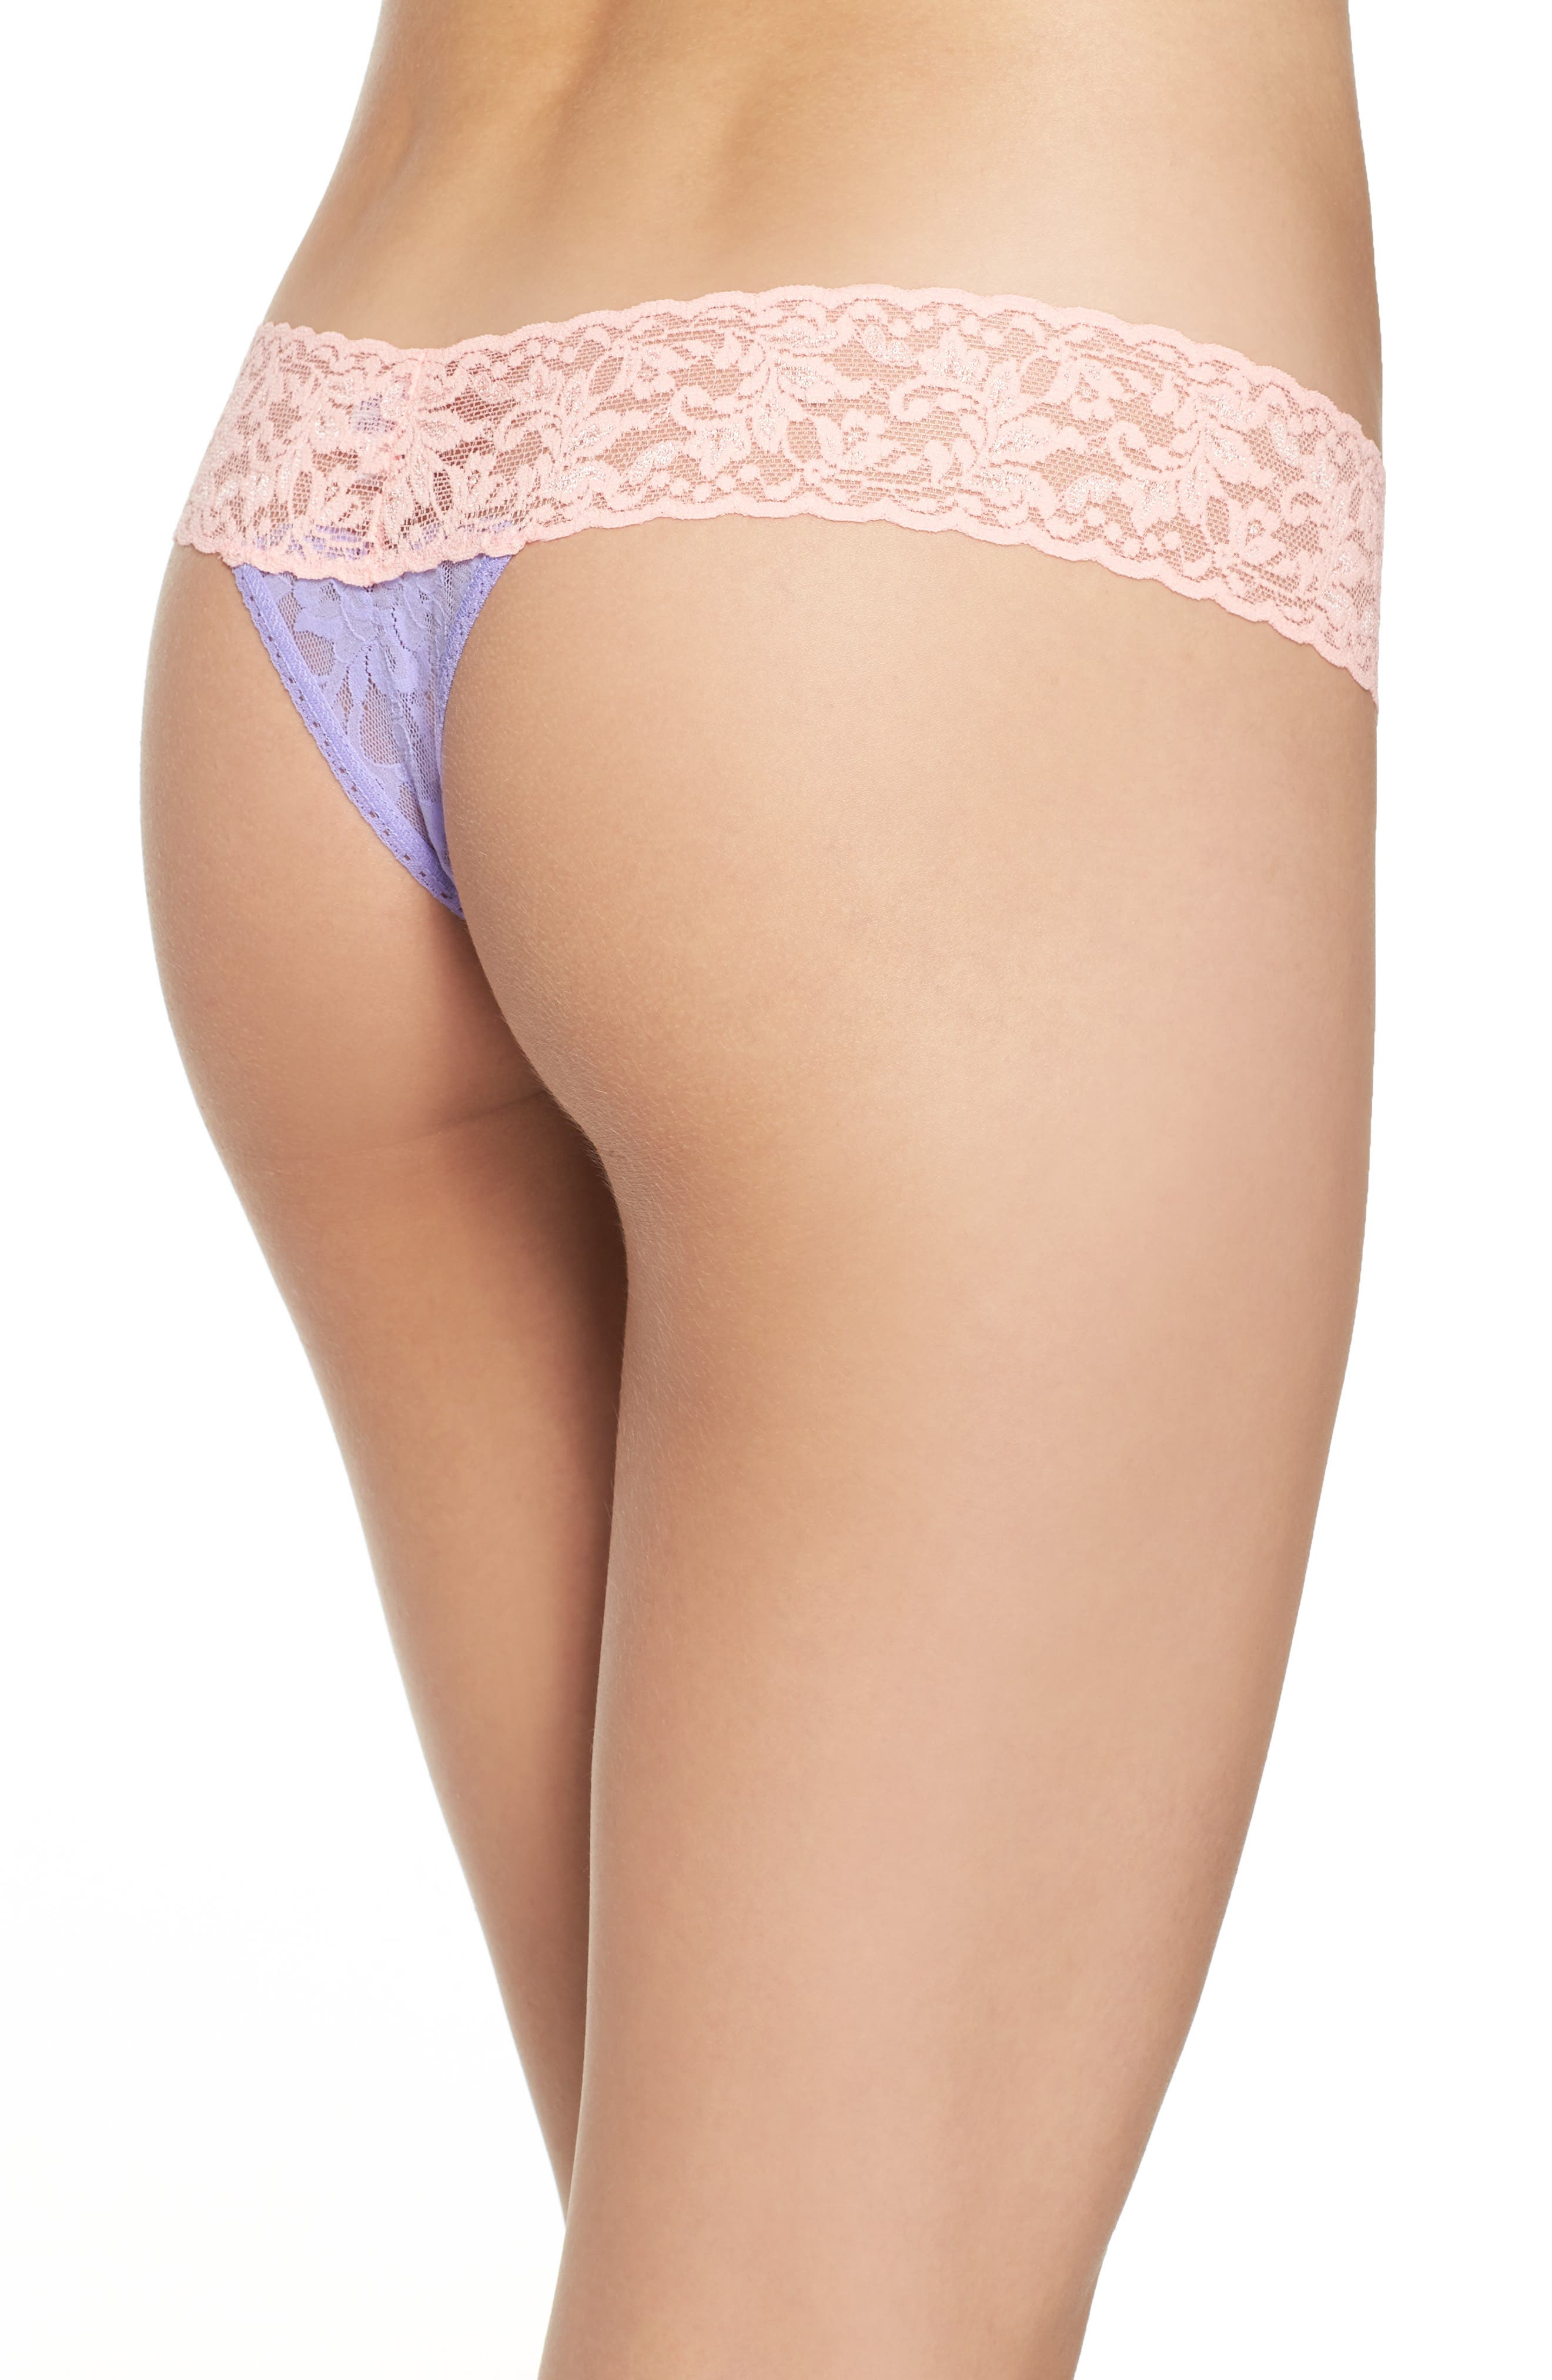 Alternate Image 2  - Hanky Panky 'Color Play' Low Rise Thong